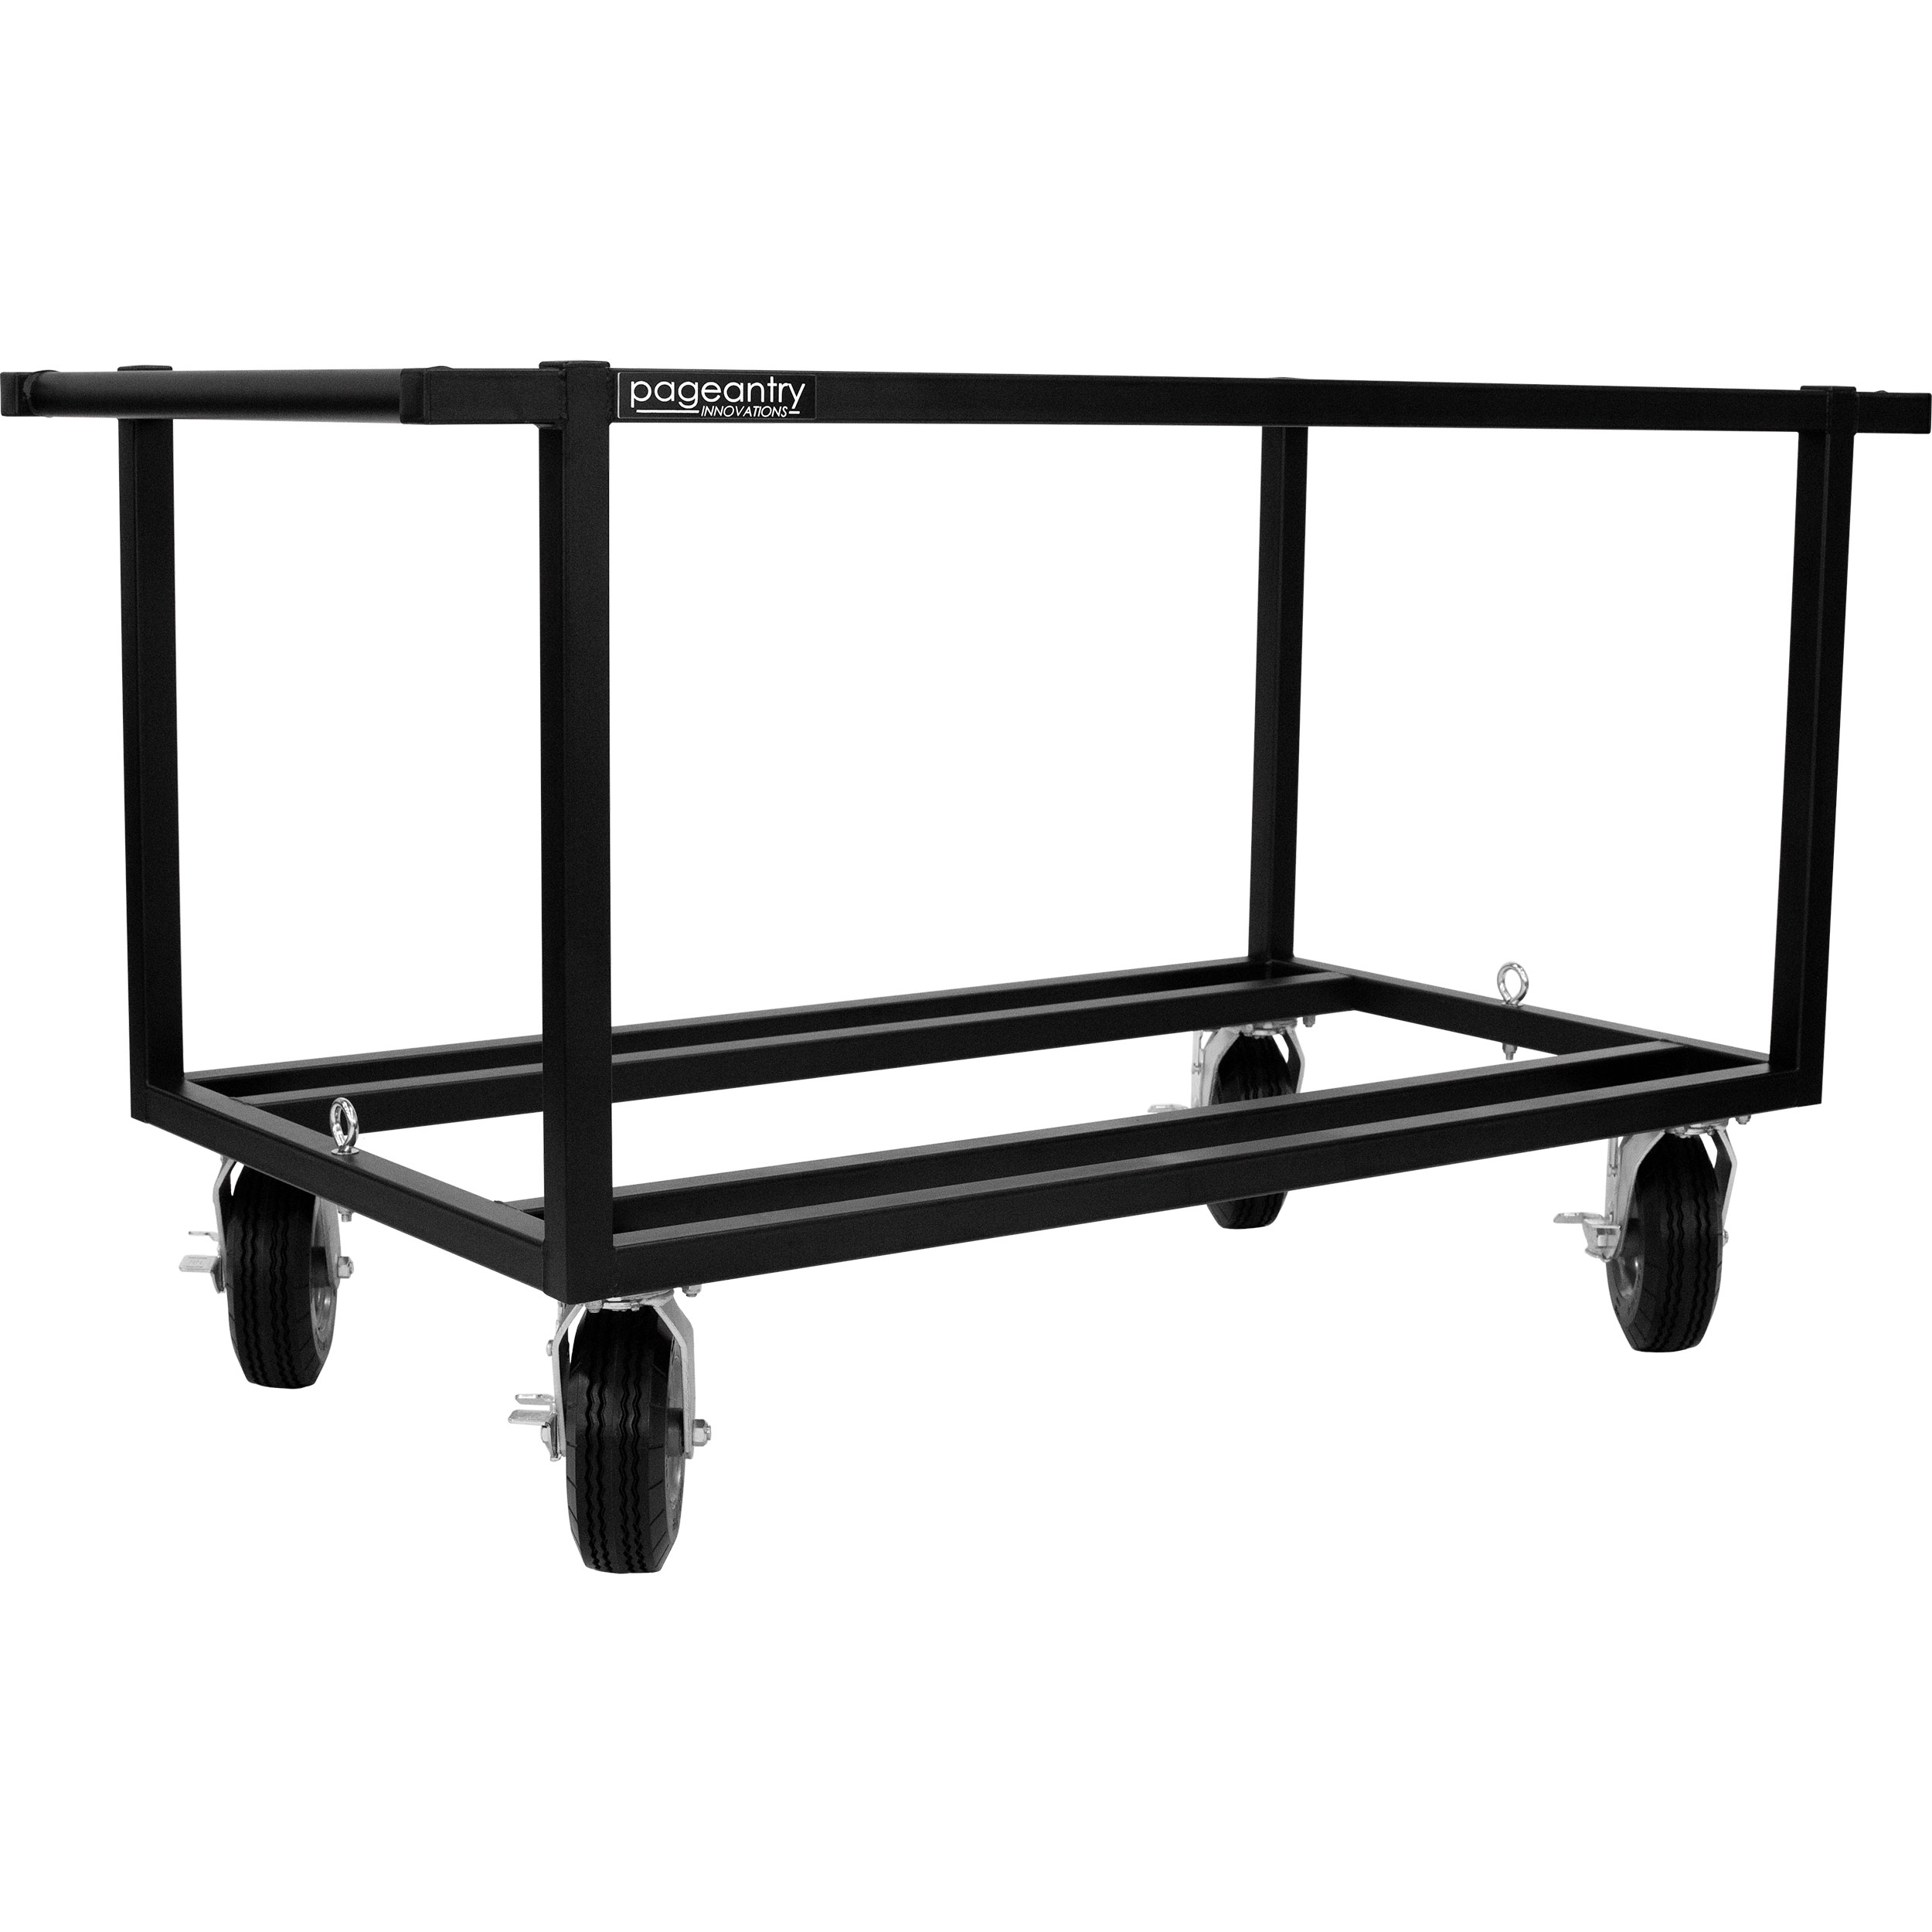 Pageantry Innovations Double Sub Speaker Cart - No Top